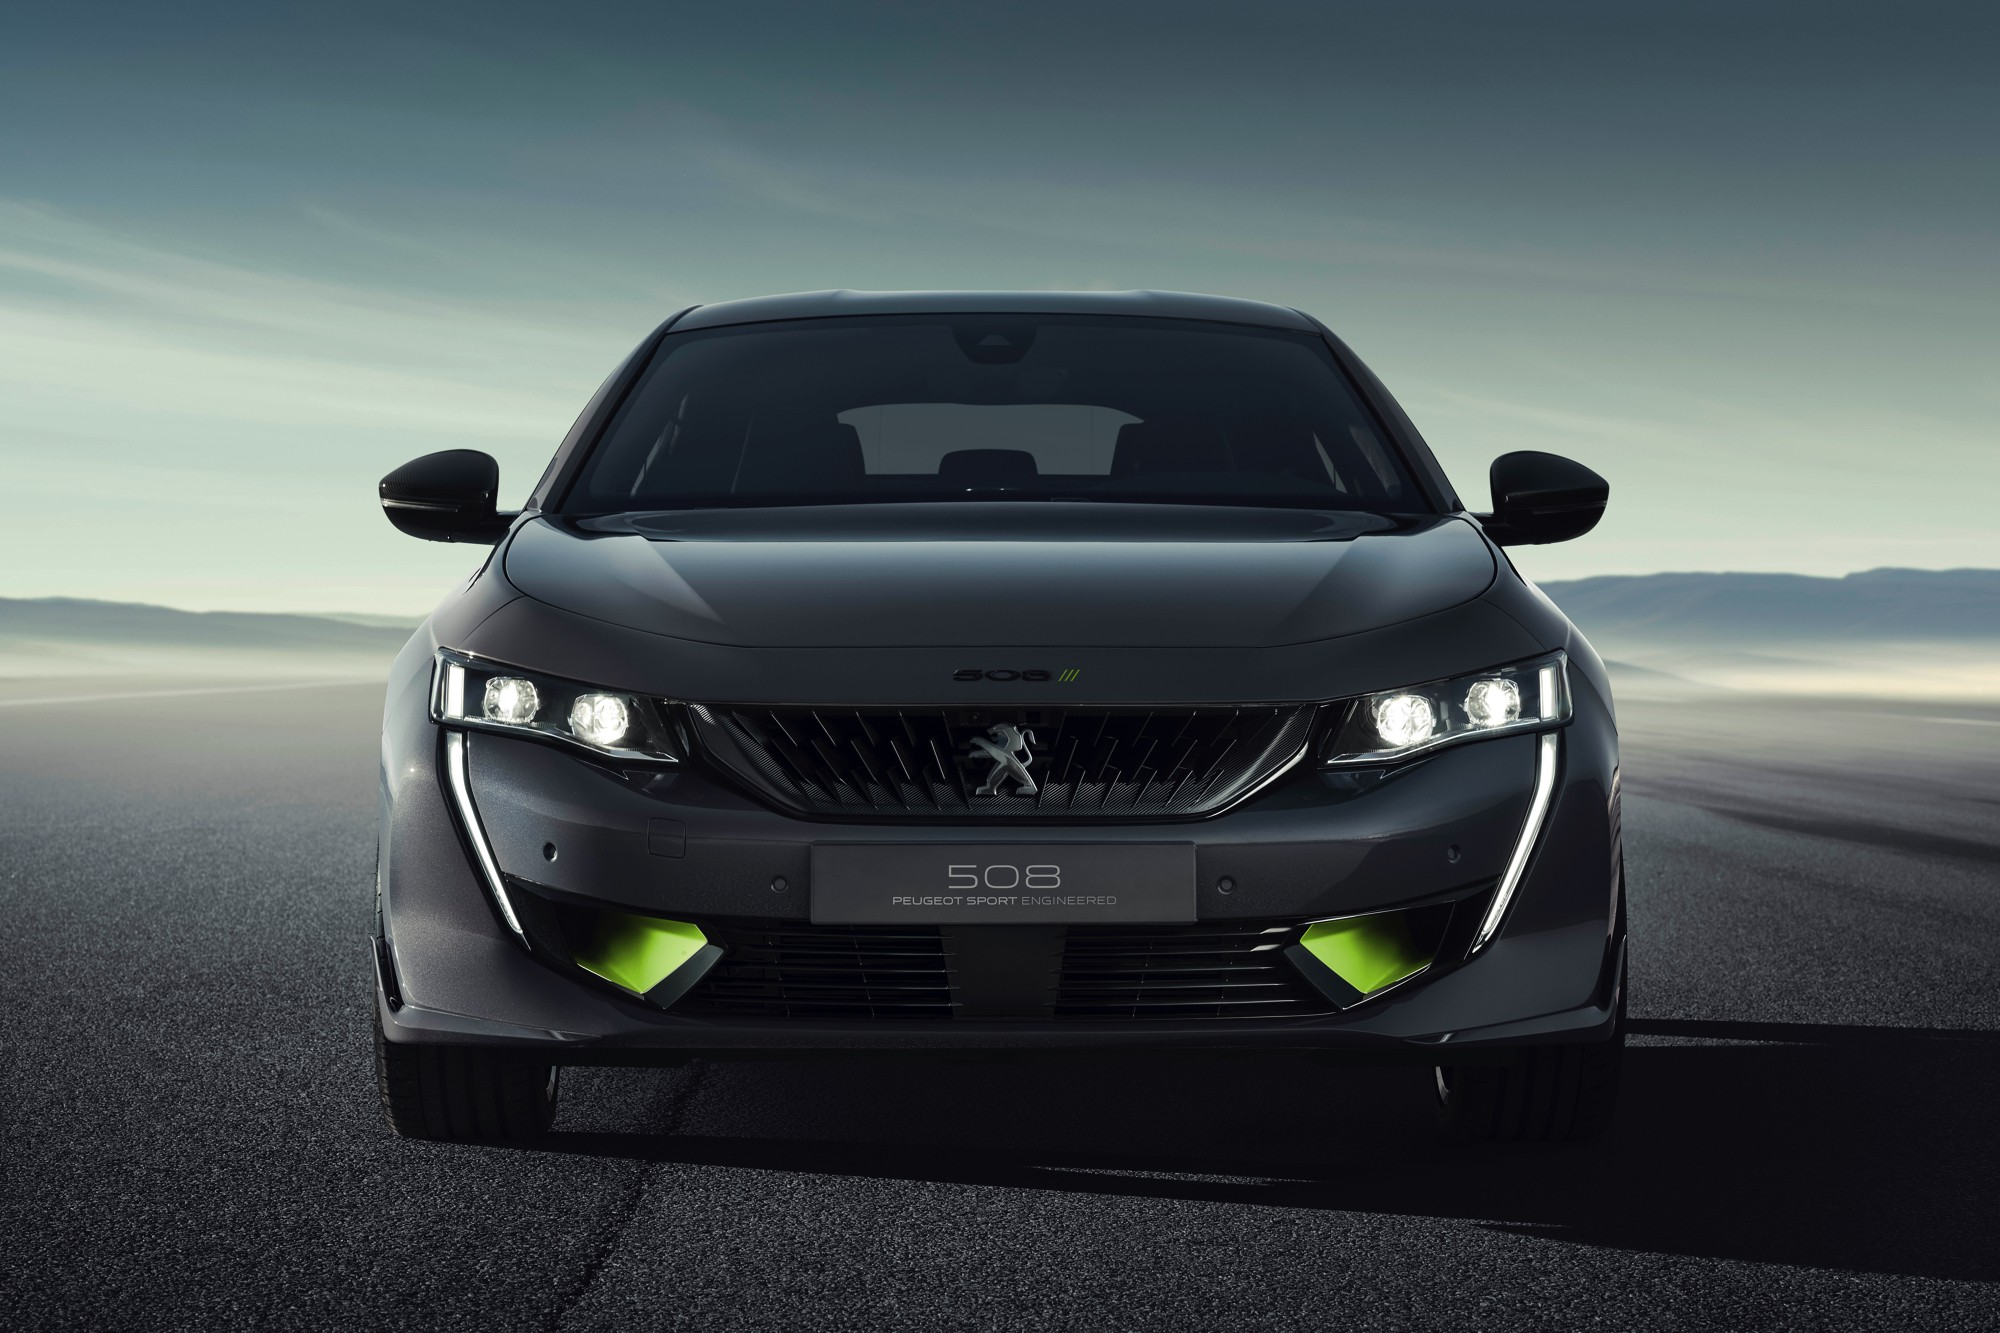 peugeot 508 by peugeot sport eng34ineered